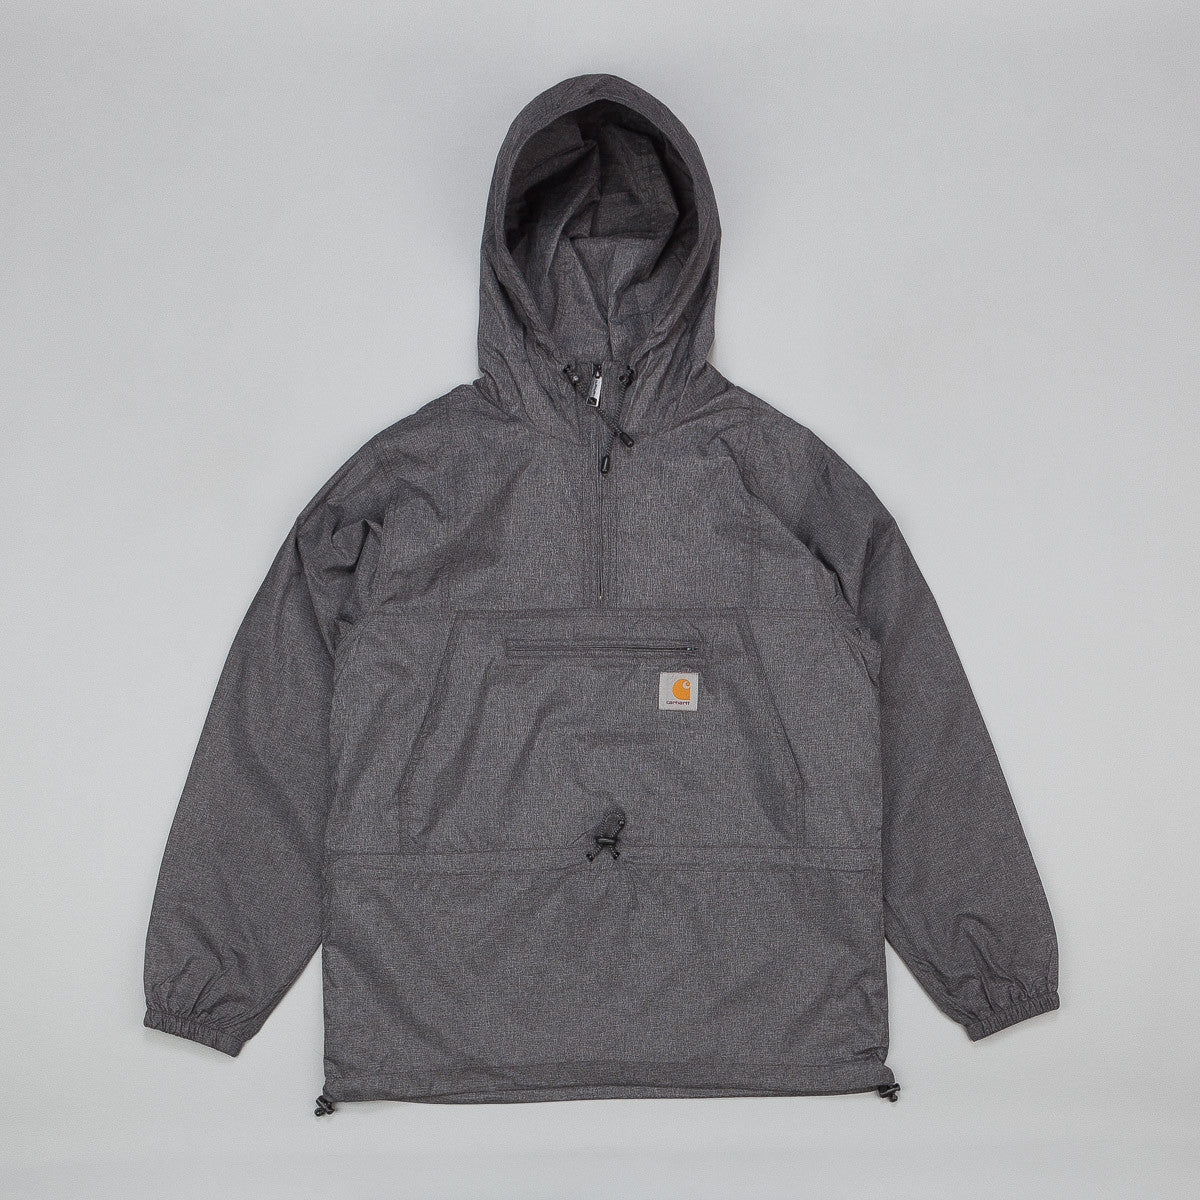 Carhartt Spinner Jacket